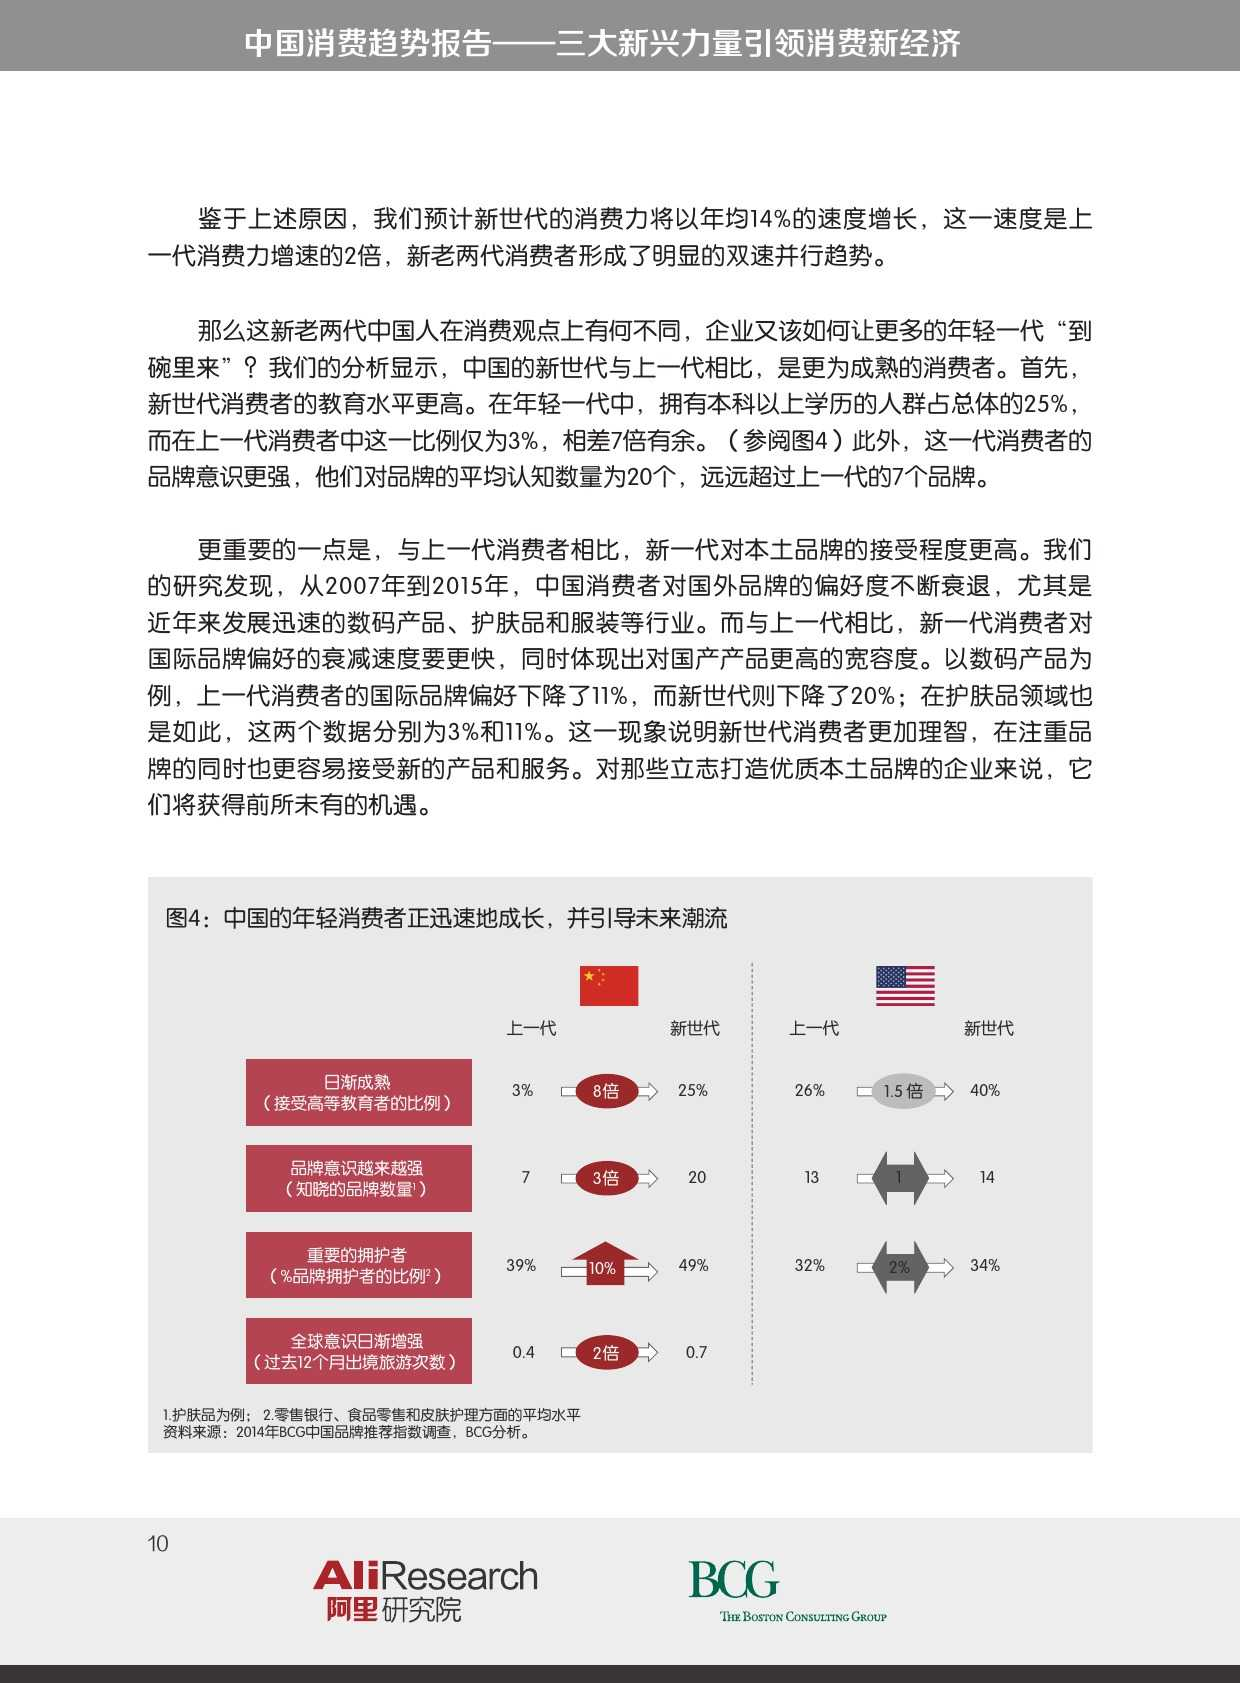 BCG_The_New_China_Playbook_Dec_2015_CHN_000010